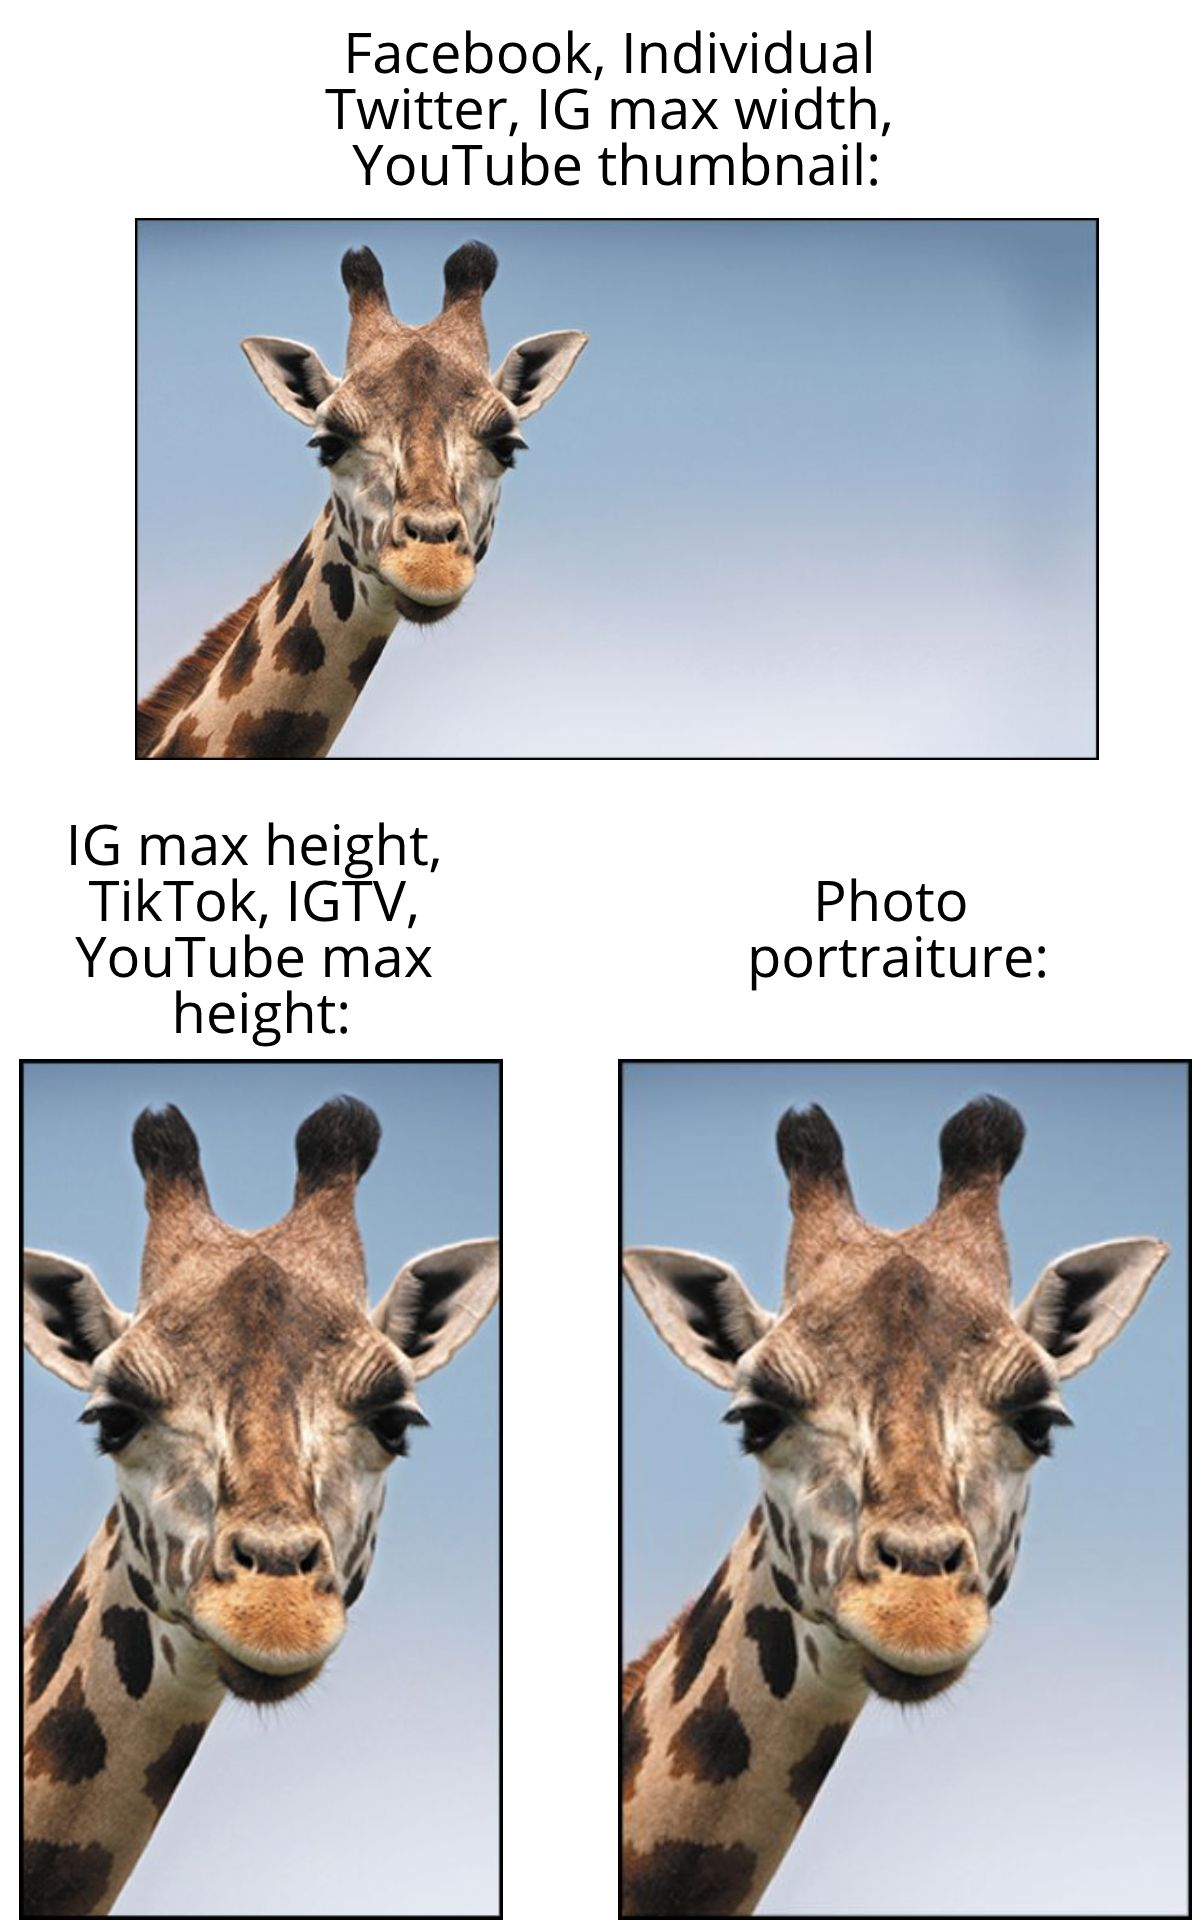 Three photos of a giraffe in different aspect ratios, labelled with the platforms that use those dimensions.